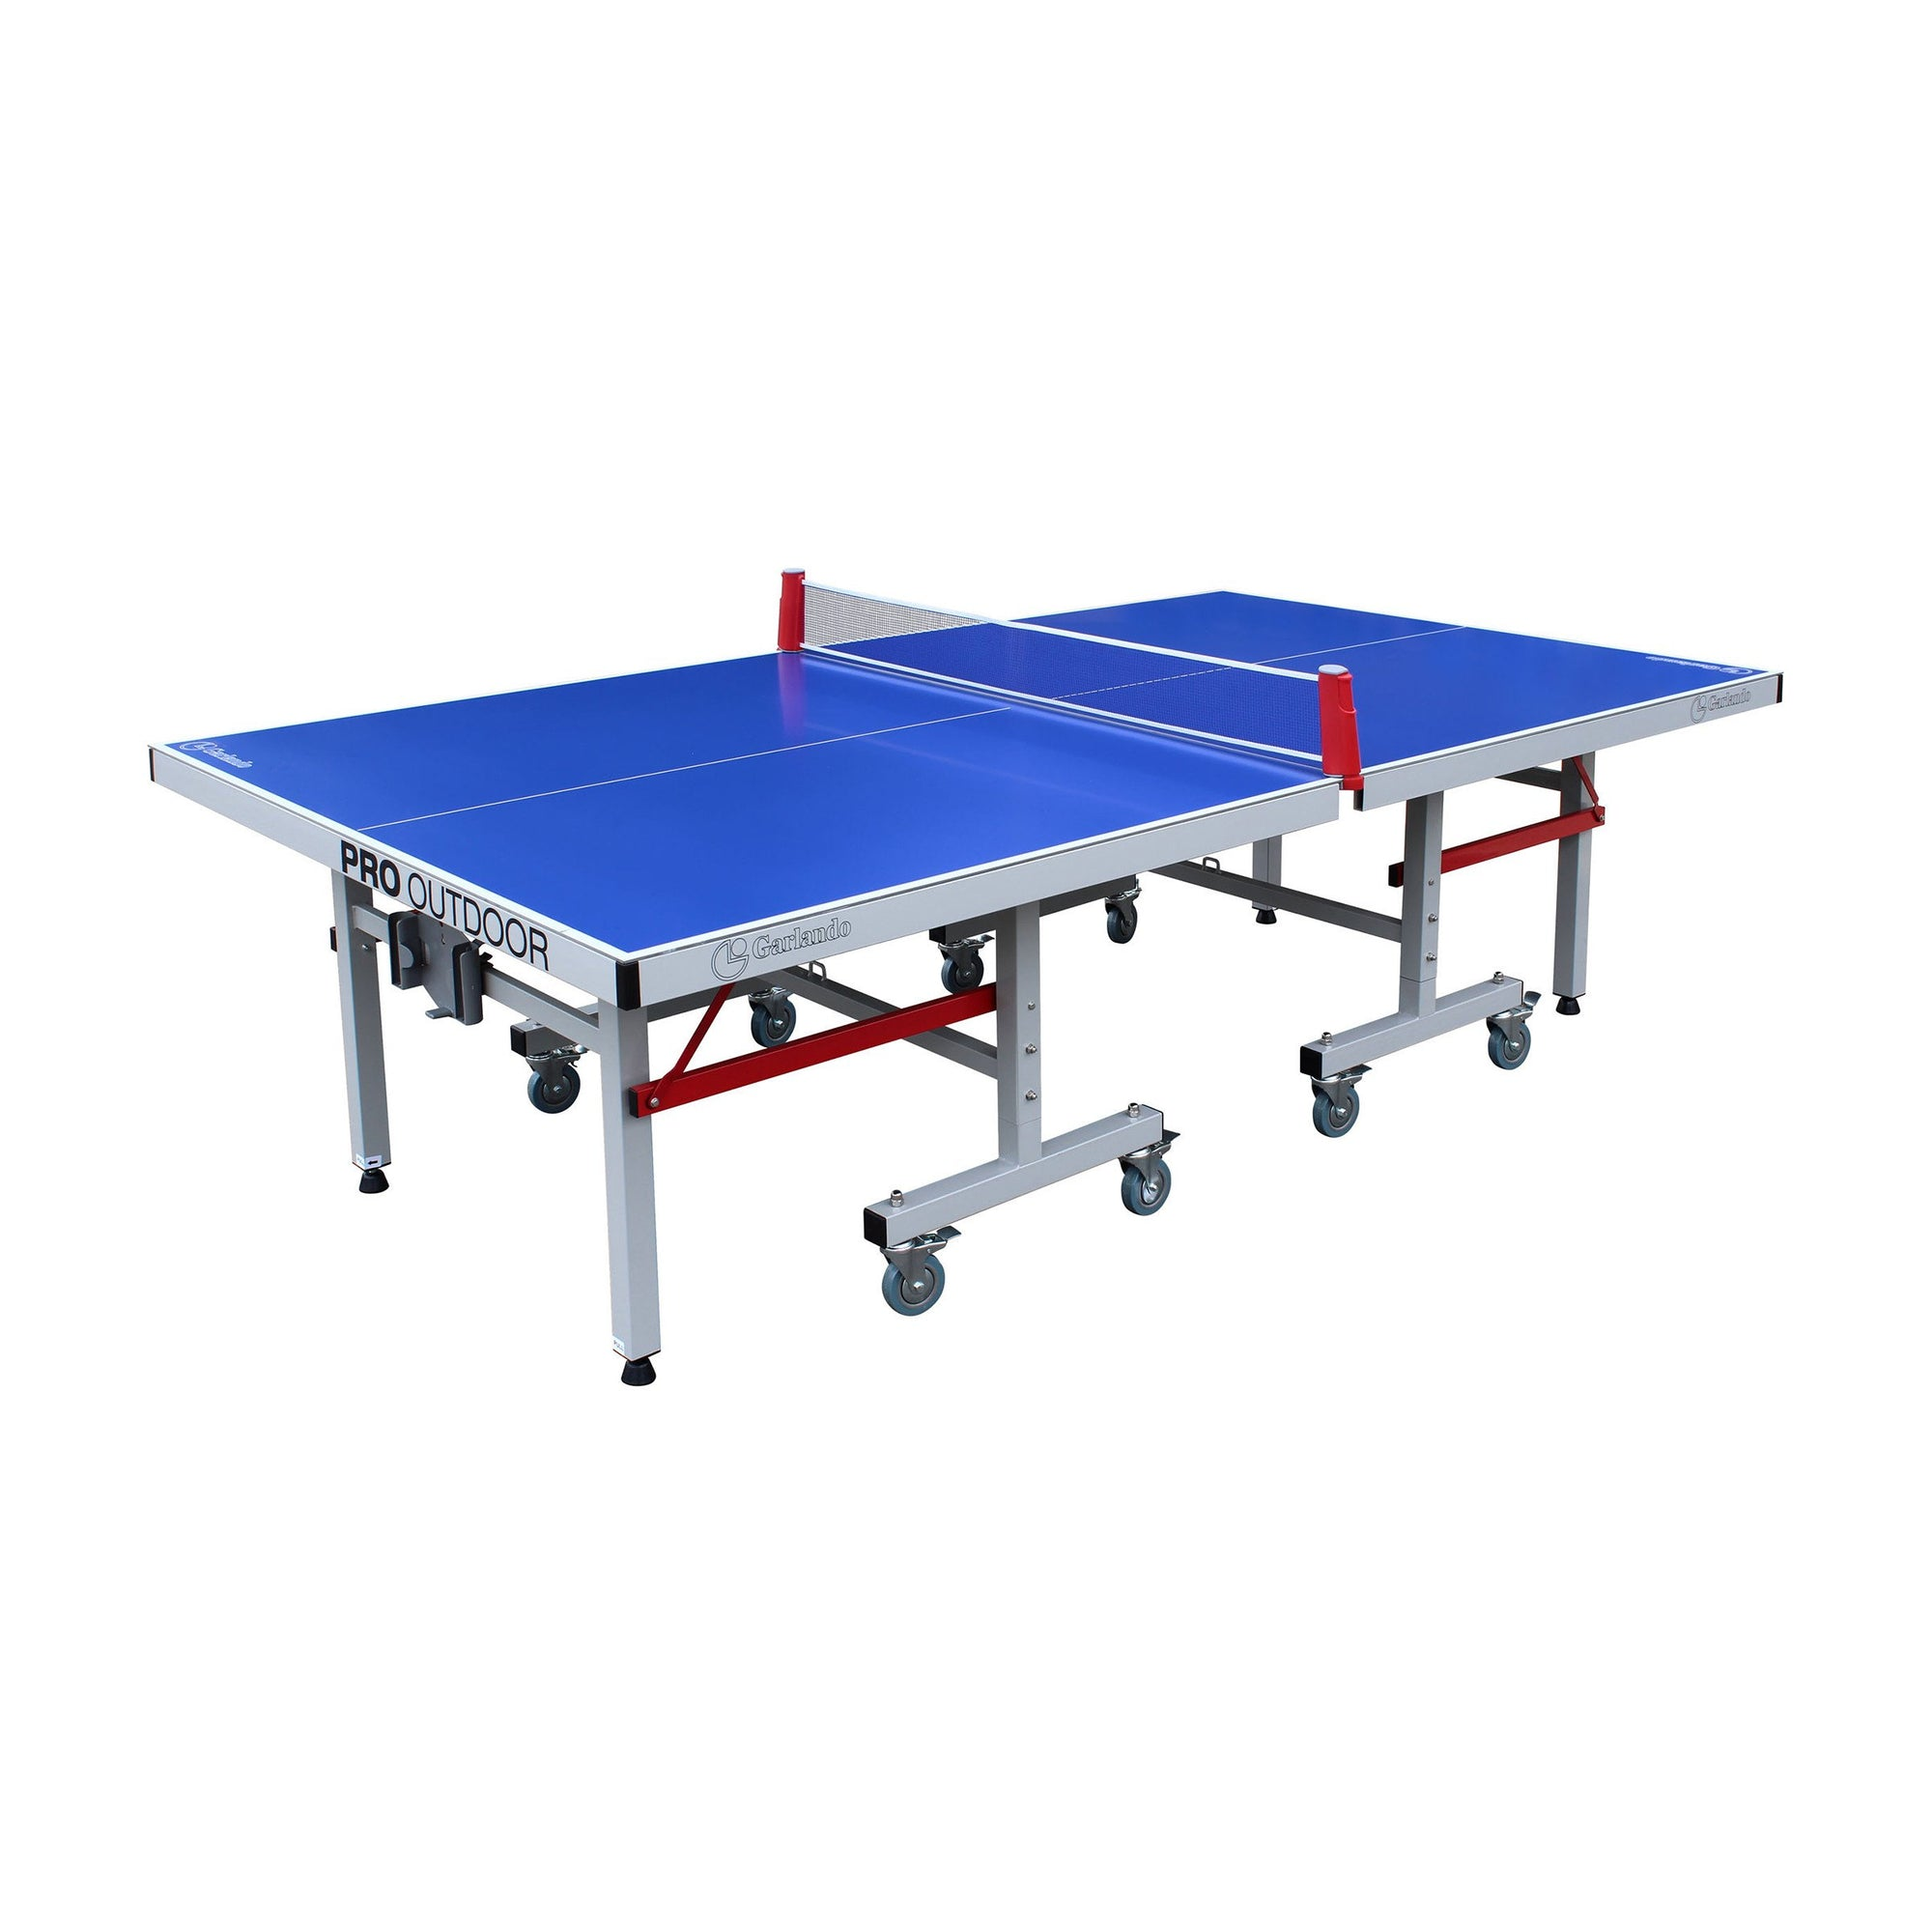 Garlando Pro Outdoor Table Tennis Table - Gaming Blaze